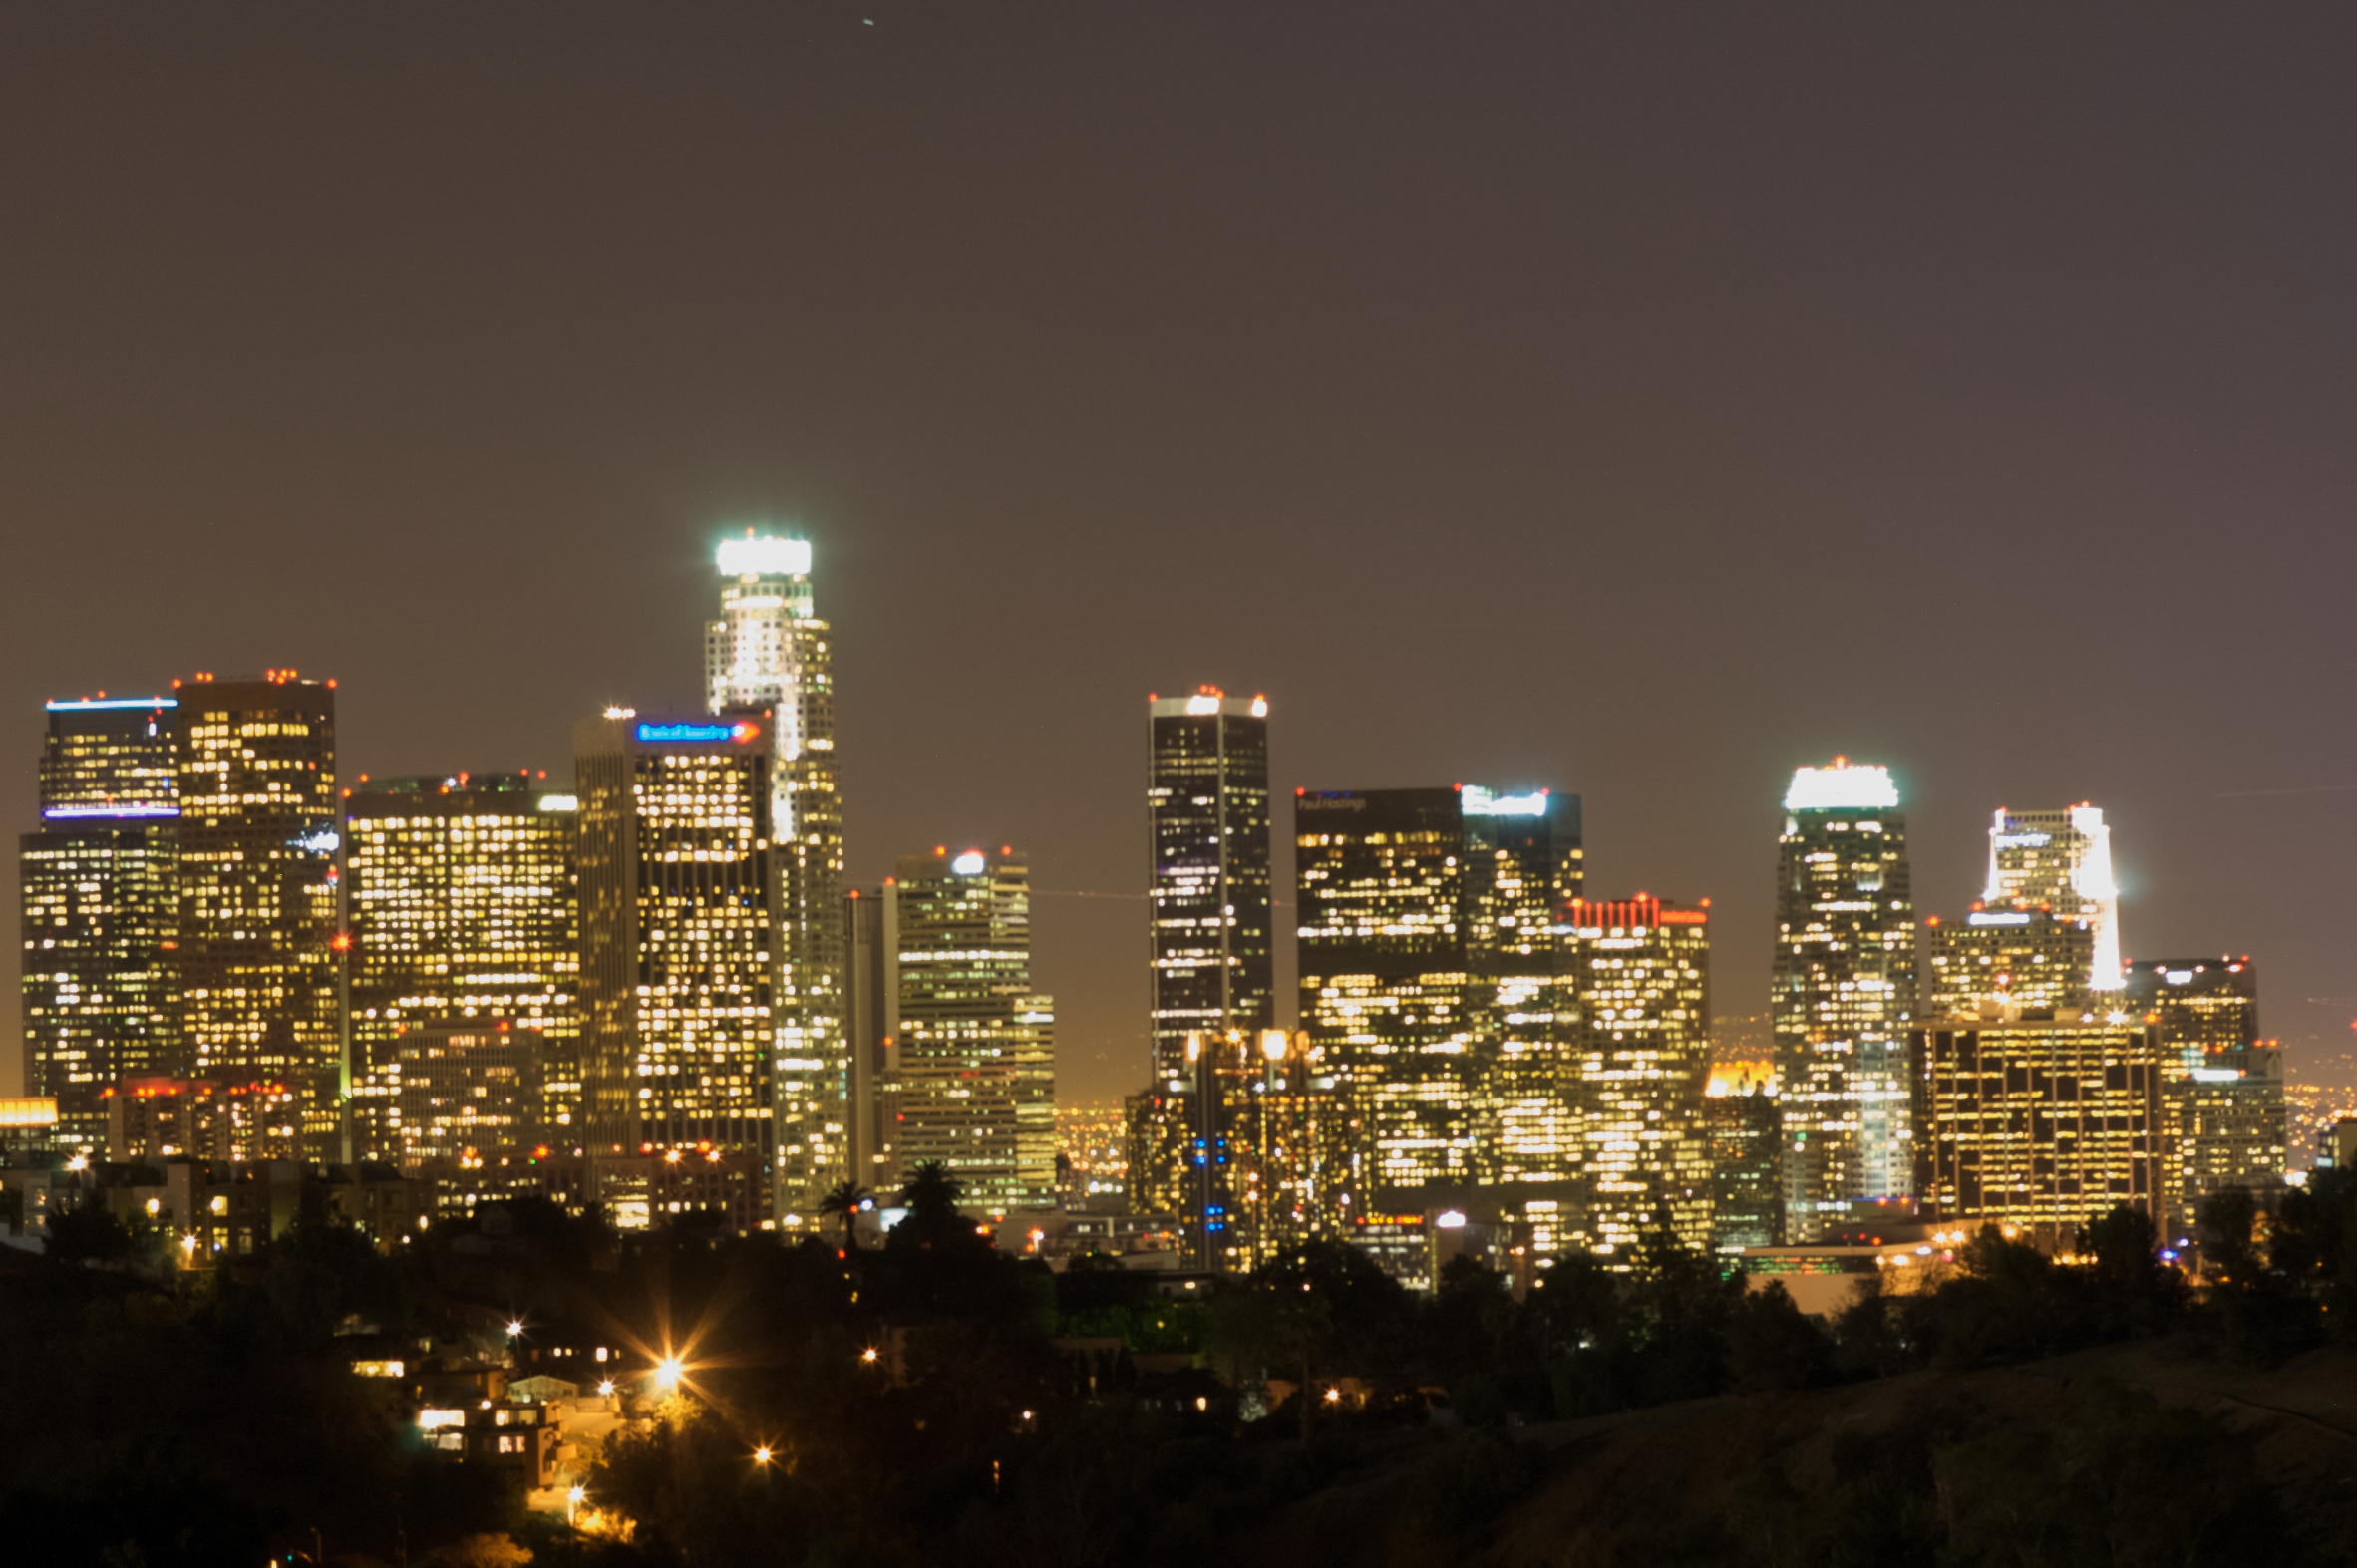 Los Angeles Skyline At Night photos, wallpapers.